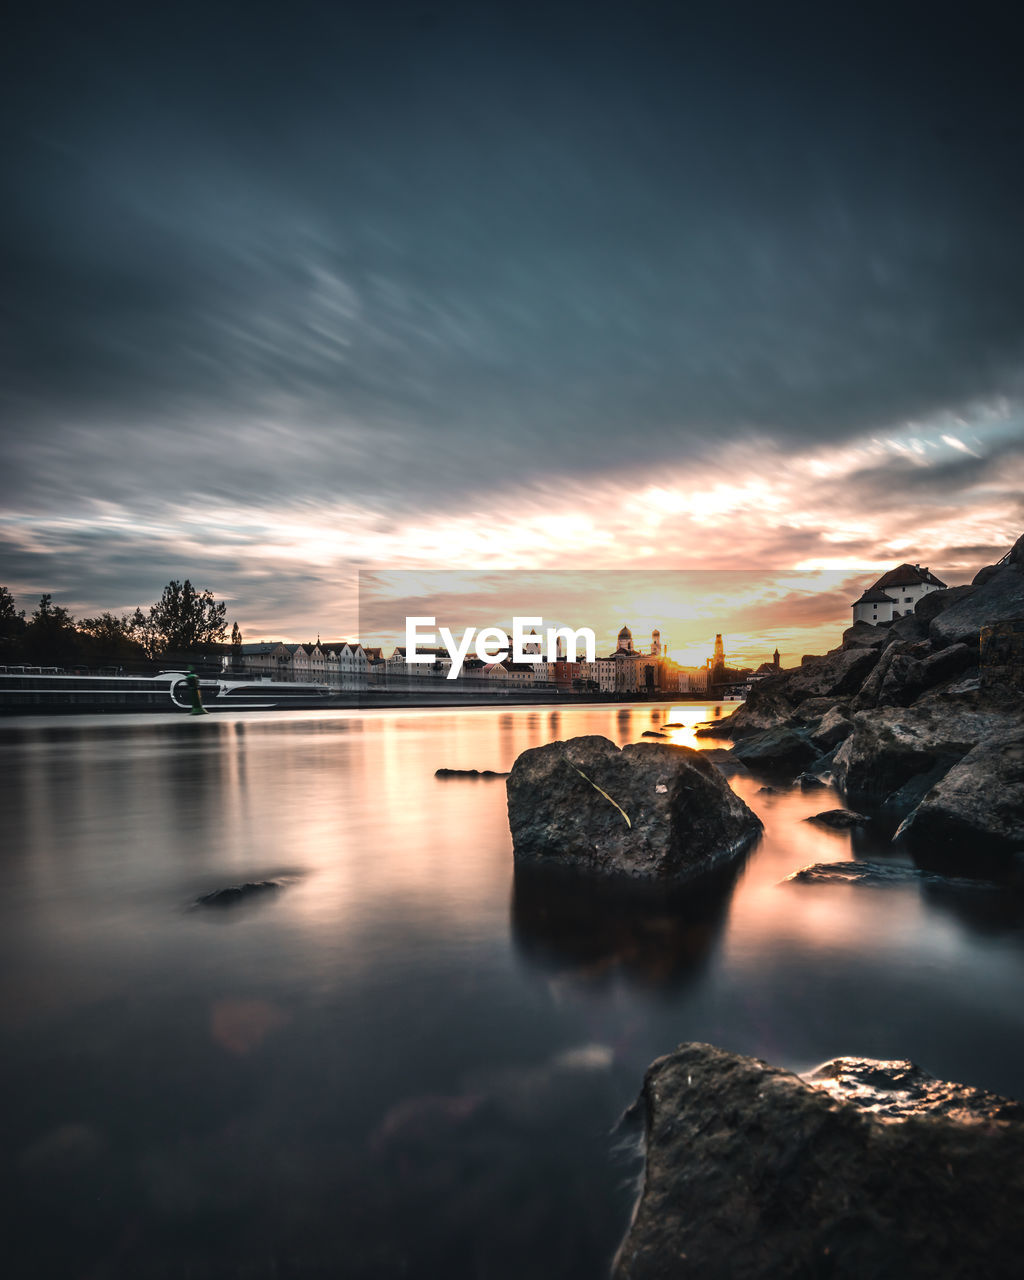 sky, water, cloud - sky, sunset, scenics - nature, rock, beauty in nature, solid, nature, tranquility, tranquil scene, reflection, rock - object, sea, no people, idyllic, long exposure, outdoors, architecture